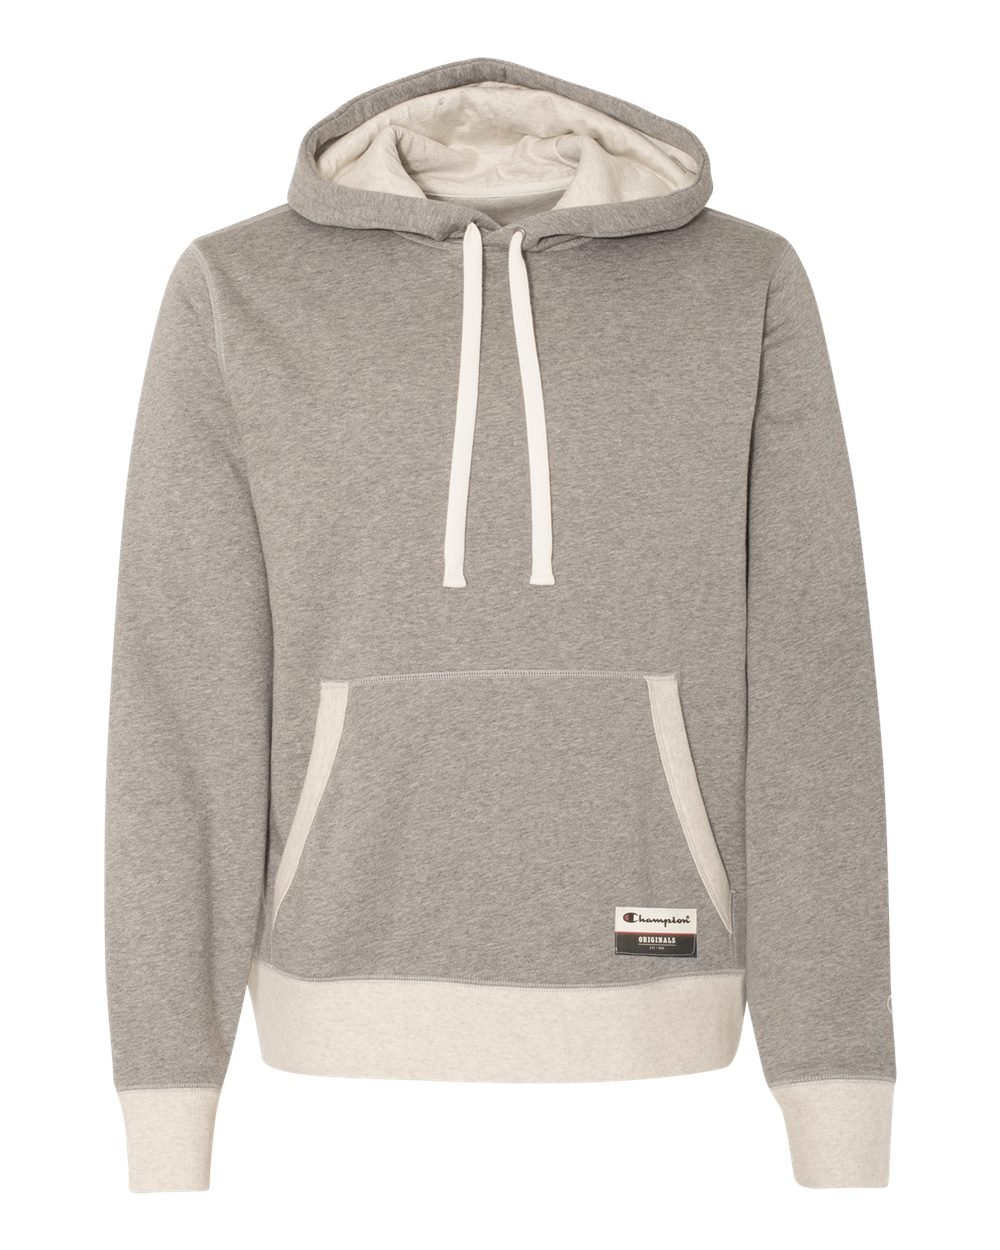 Champion Men's Authentic Originals Sueded Fleece Pullover Hoodie, Oxford Gray/Oatmeal Heather, XXX-Large